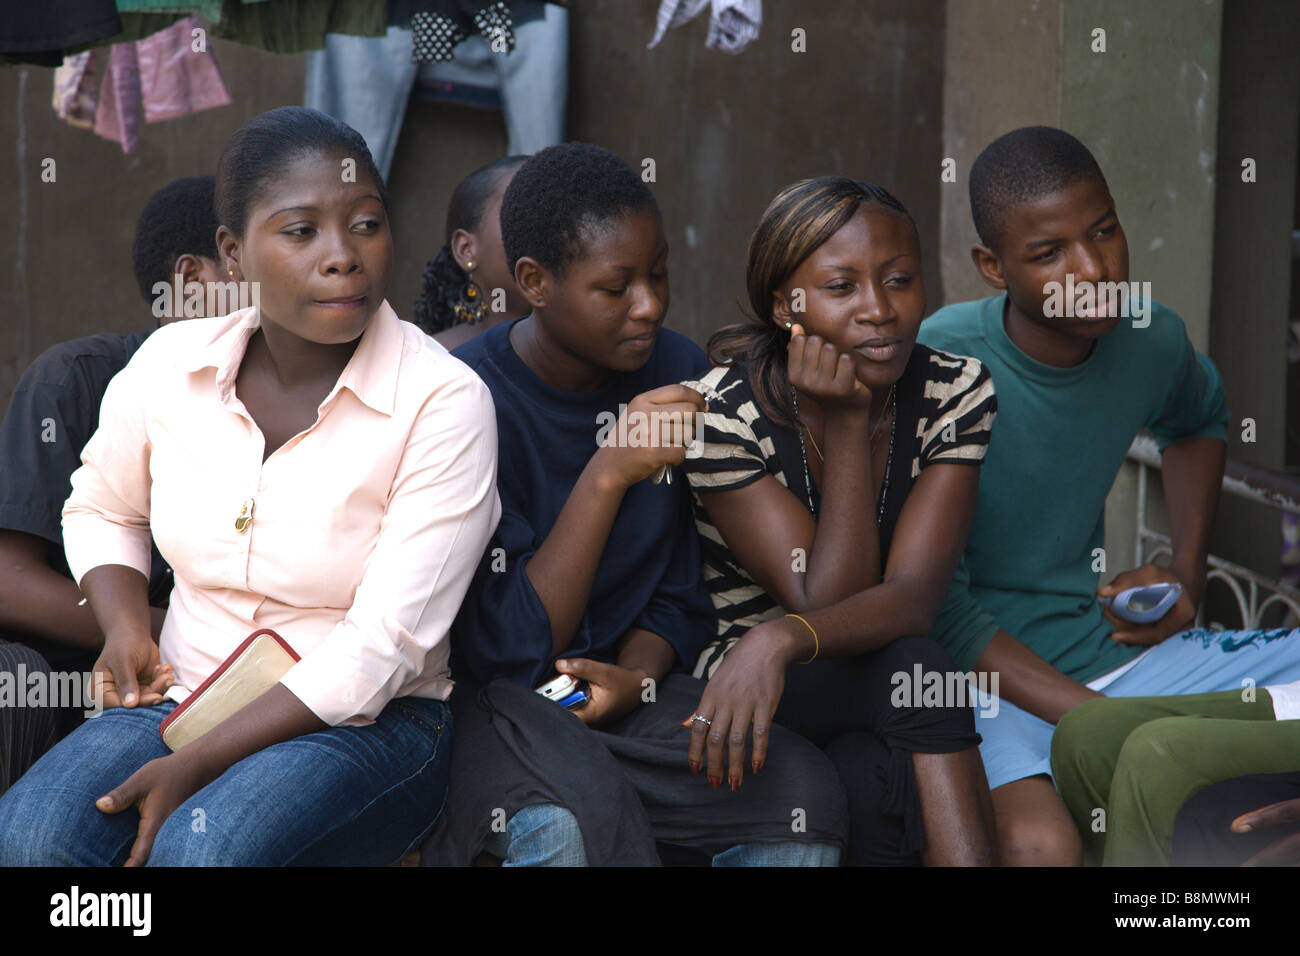 A group of young men and women in Lagos, Nigeria listen to one of their peers talk about how to prevent HIV/AIDS. - Stock Image